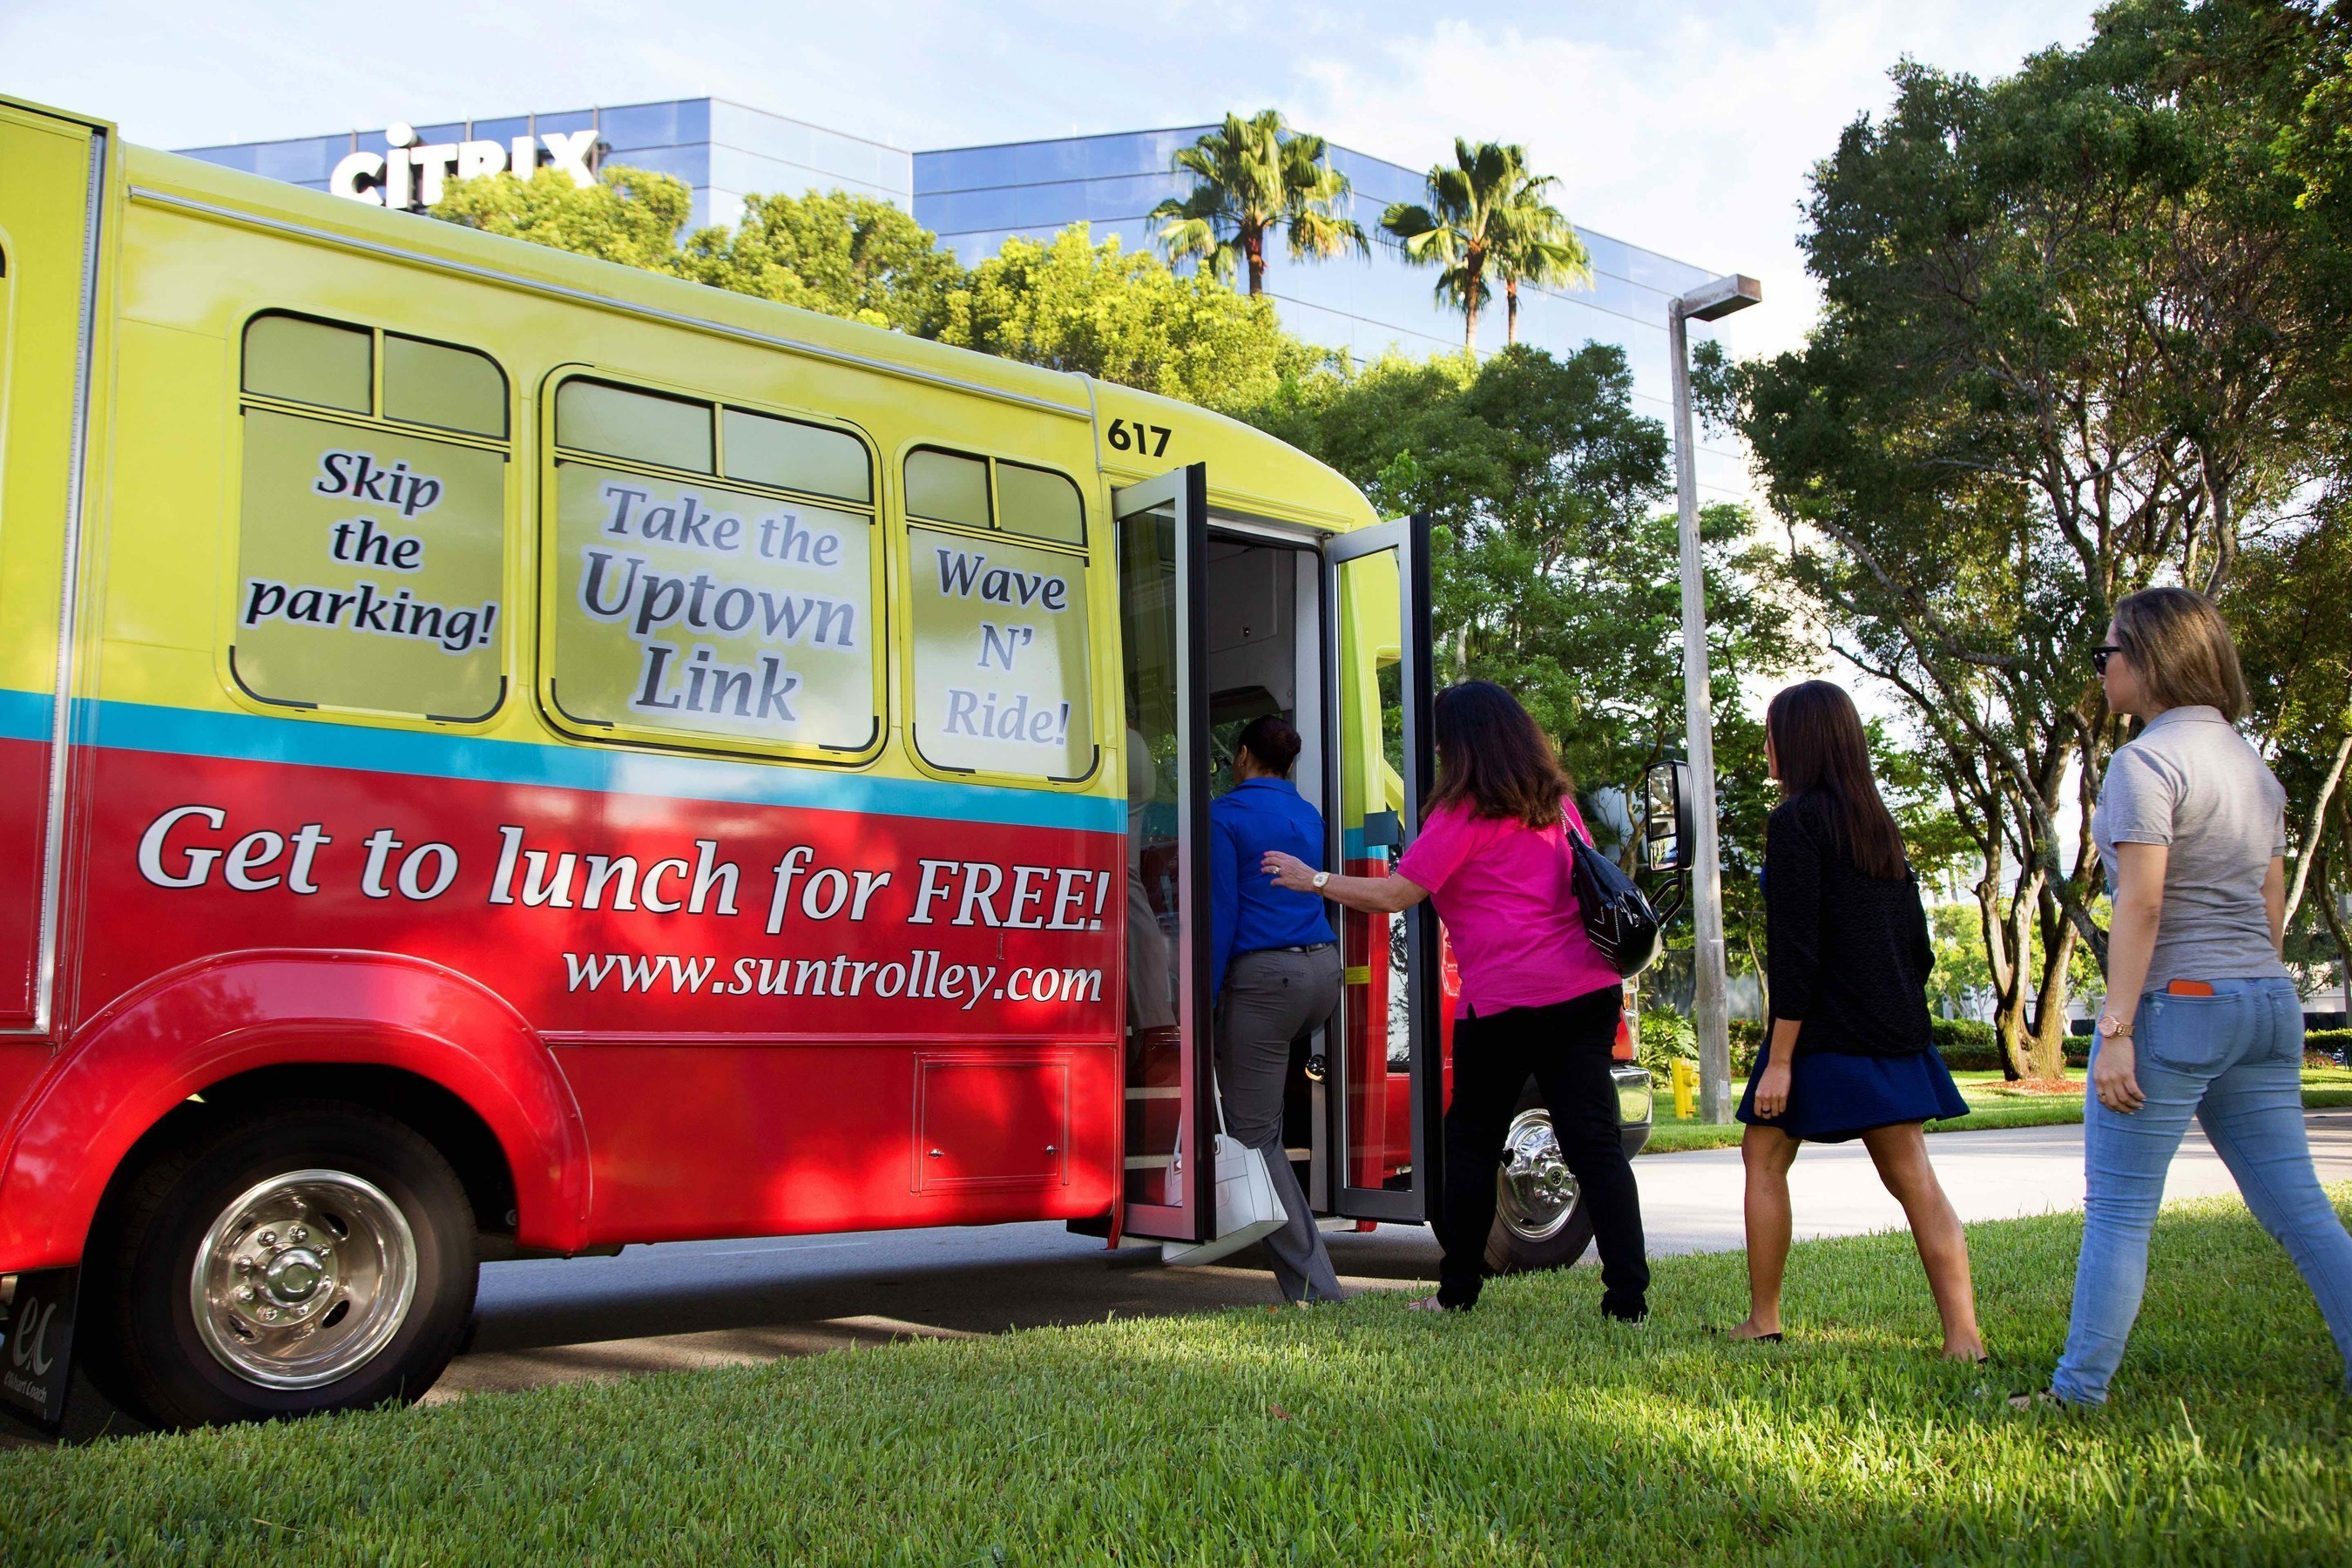 Sun Trolley Streamlines Uptown 'Lunch' Link Route to Better Serve Working Professionals in the